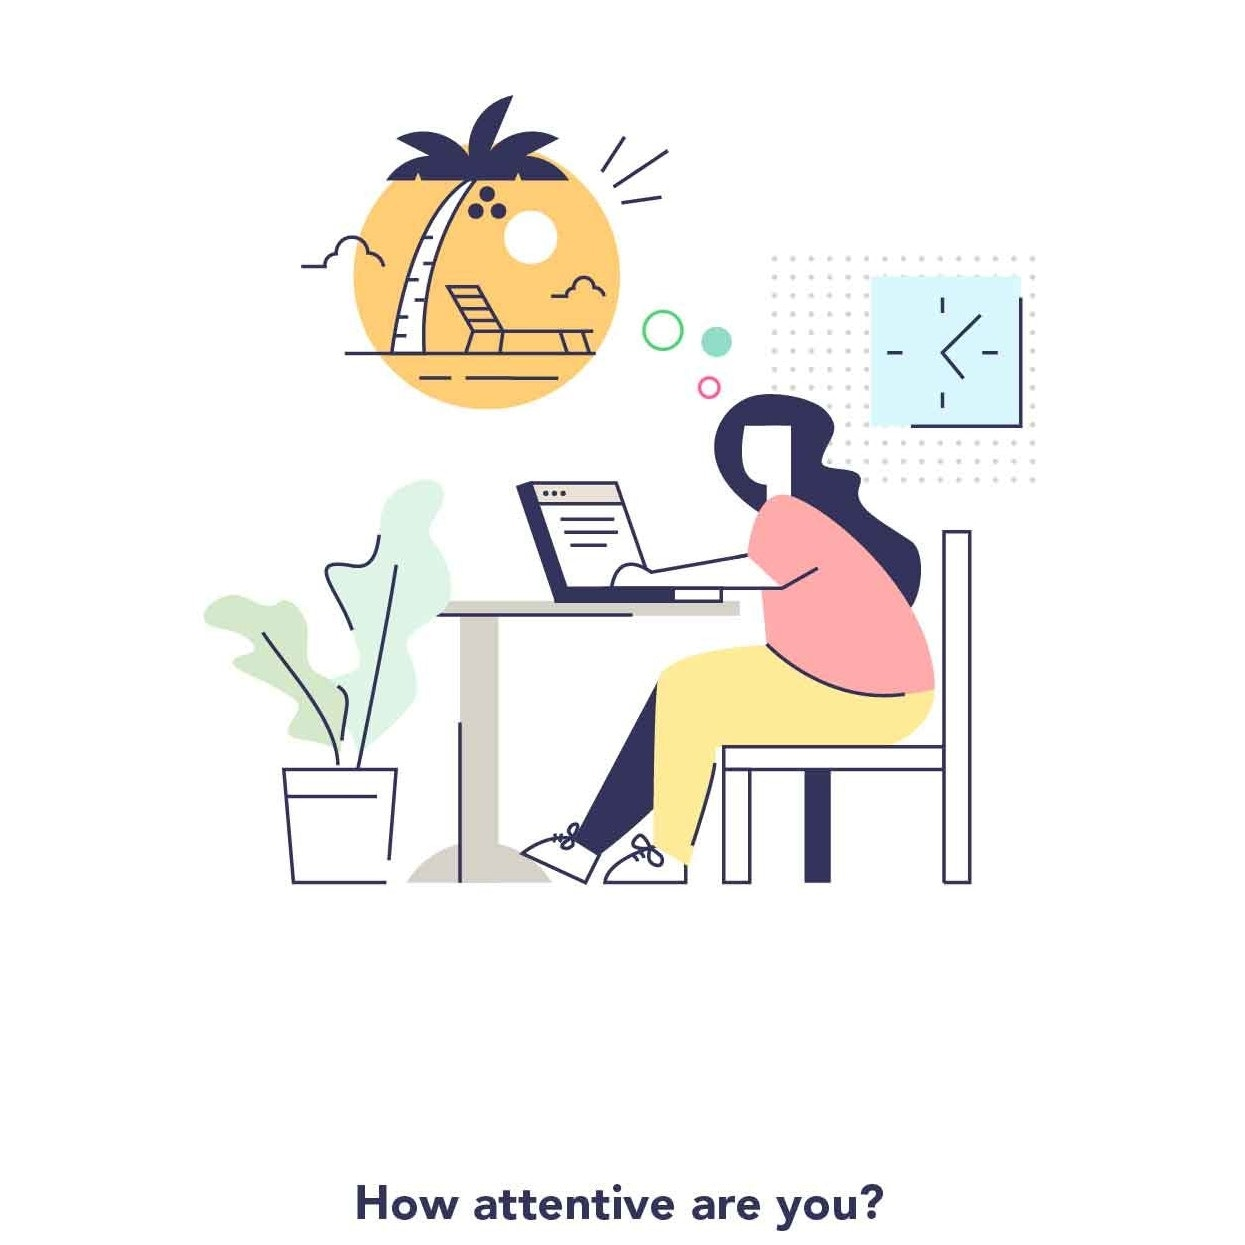 How attentive are you? illustration